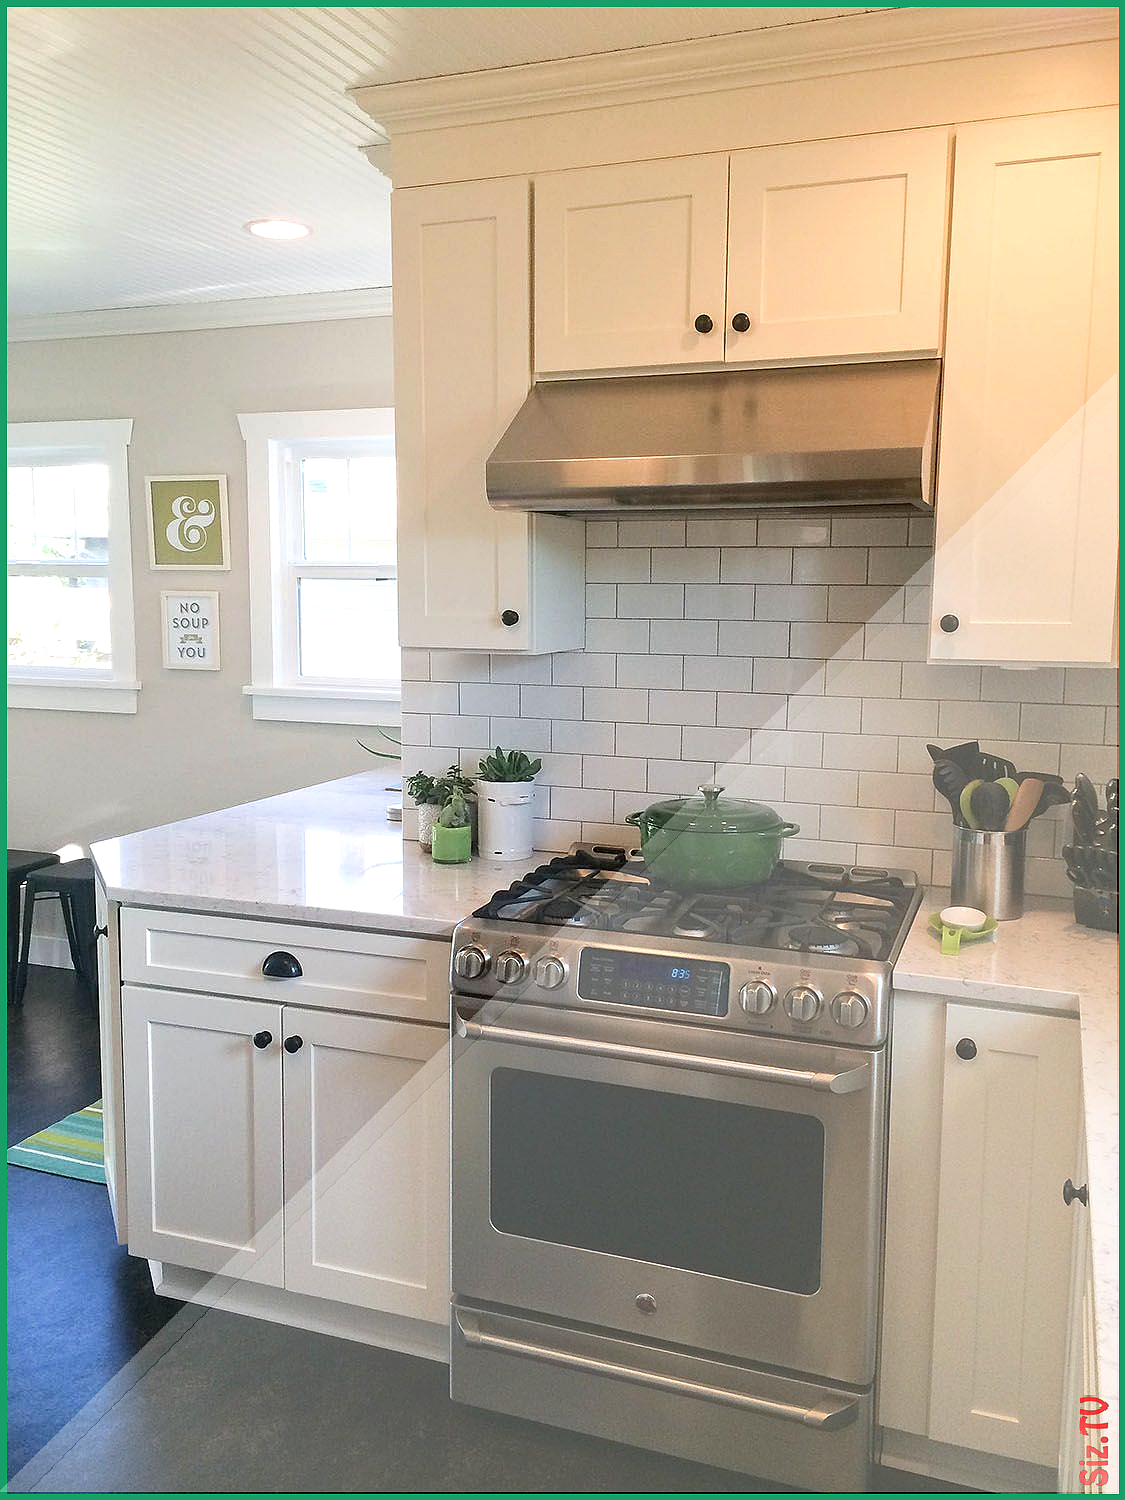 Seattle Remodeled Kitchen Has Beadboard Ceiling White Shaker Cabinets Angle Base Cabinet White Shaker Cabinets Kitchen Cabinet Crown Molding Beadboard Ceiling